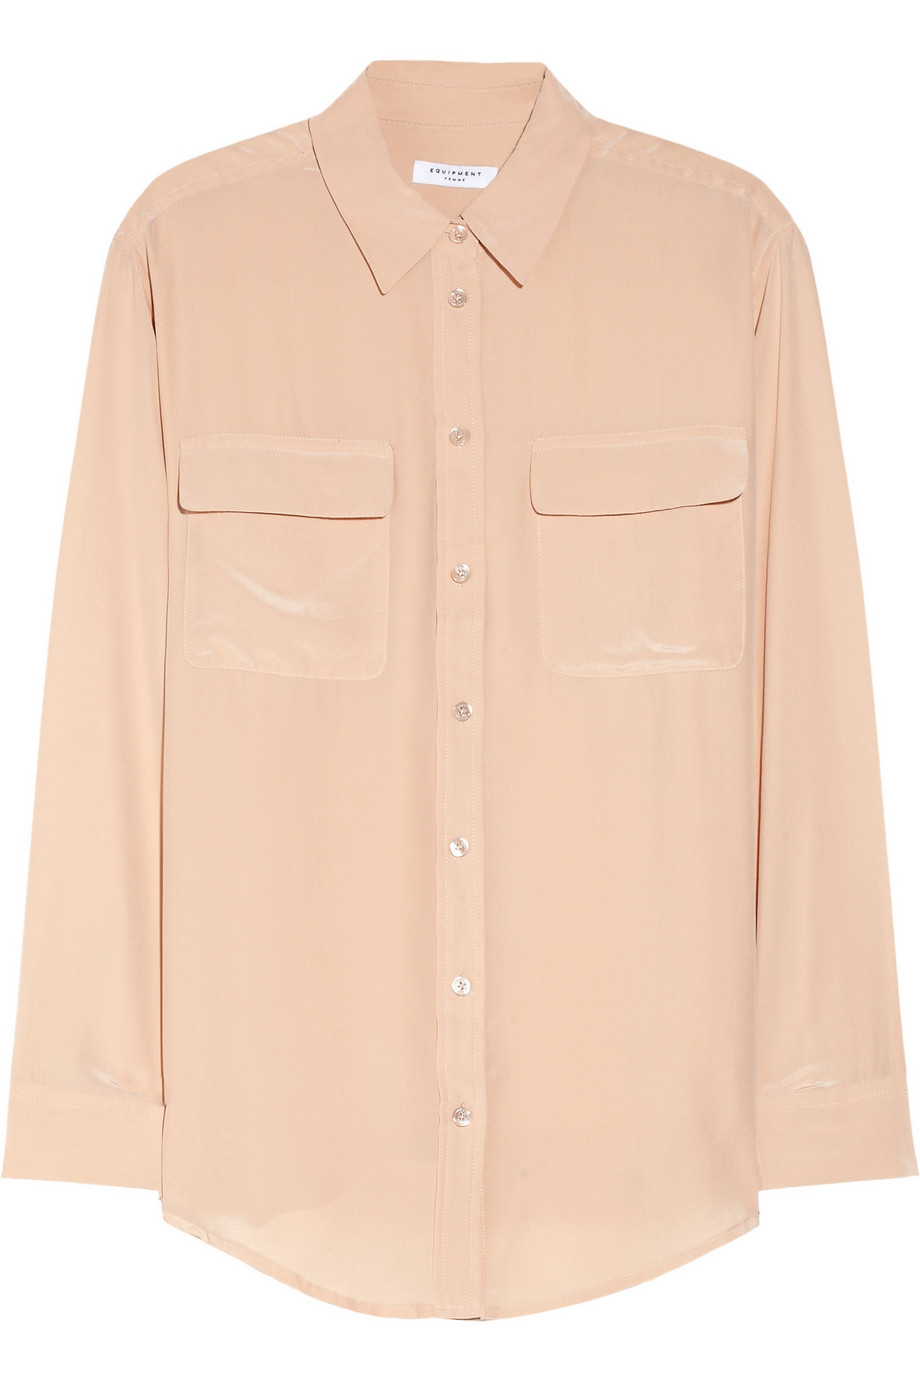 Equipment Signature Washed-Silk Shirt, Blush, Women's, Size: XS